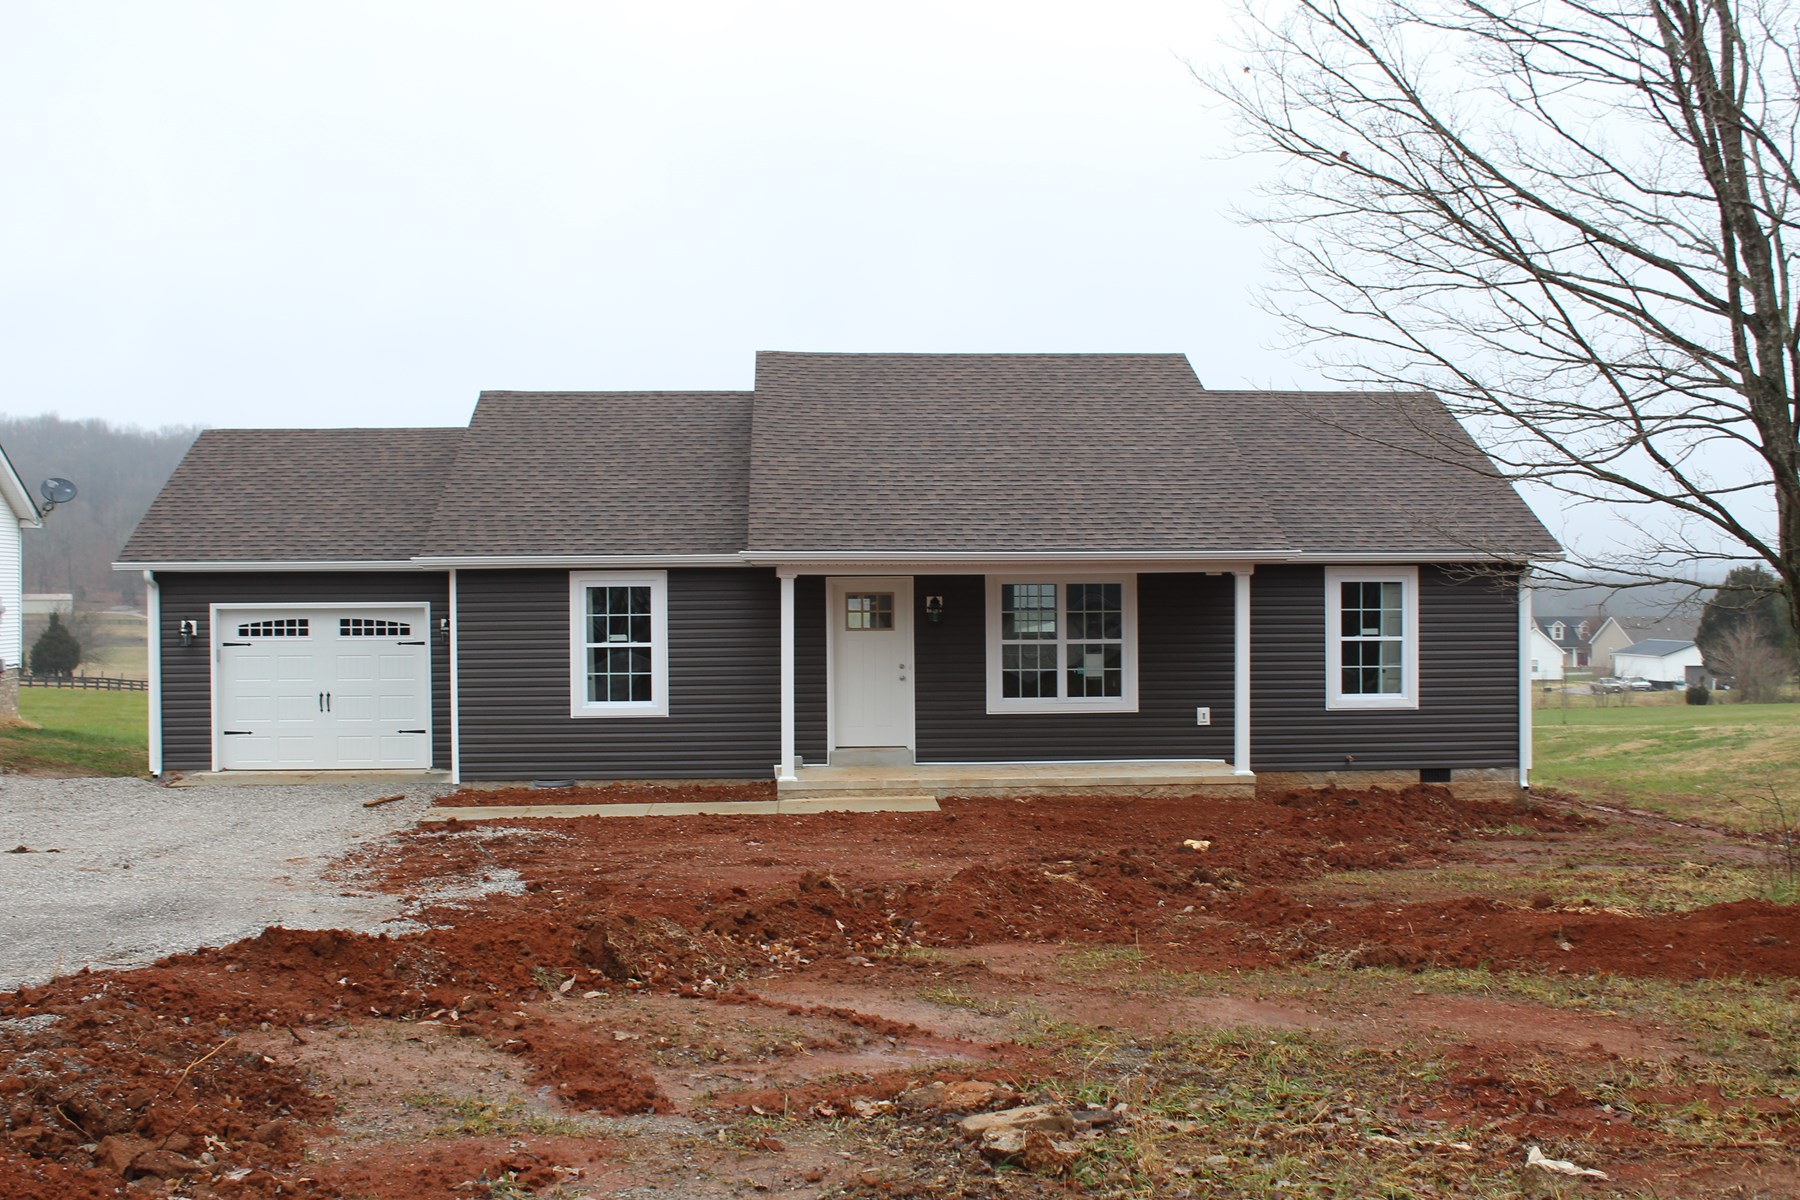 3 Bedroom 2 Bath country home for sale near Bowling Green Ky